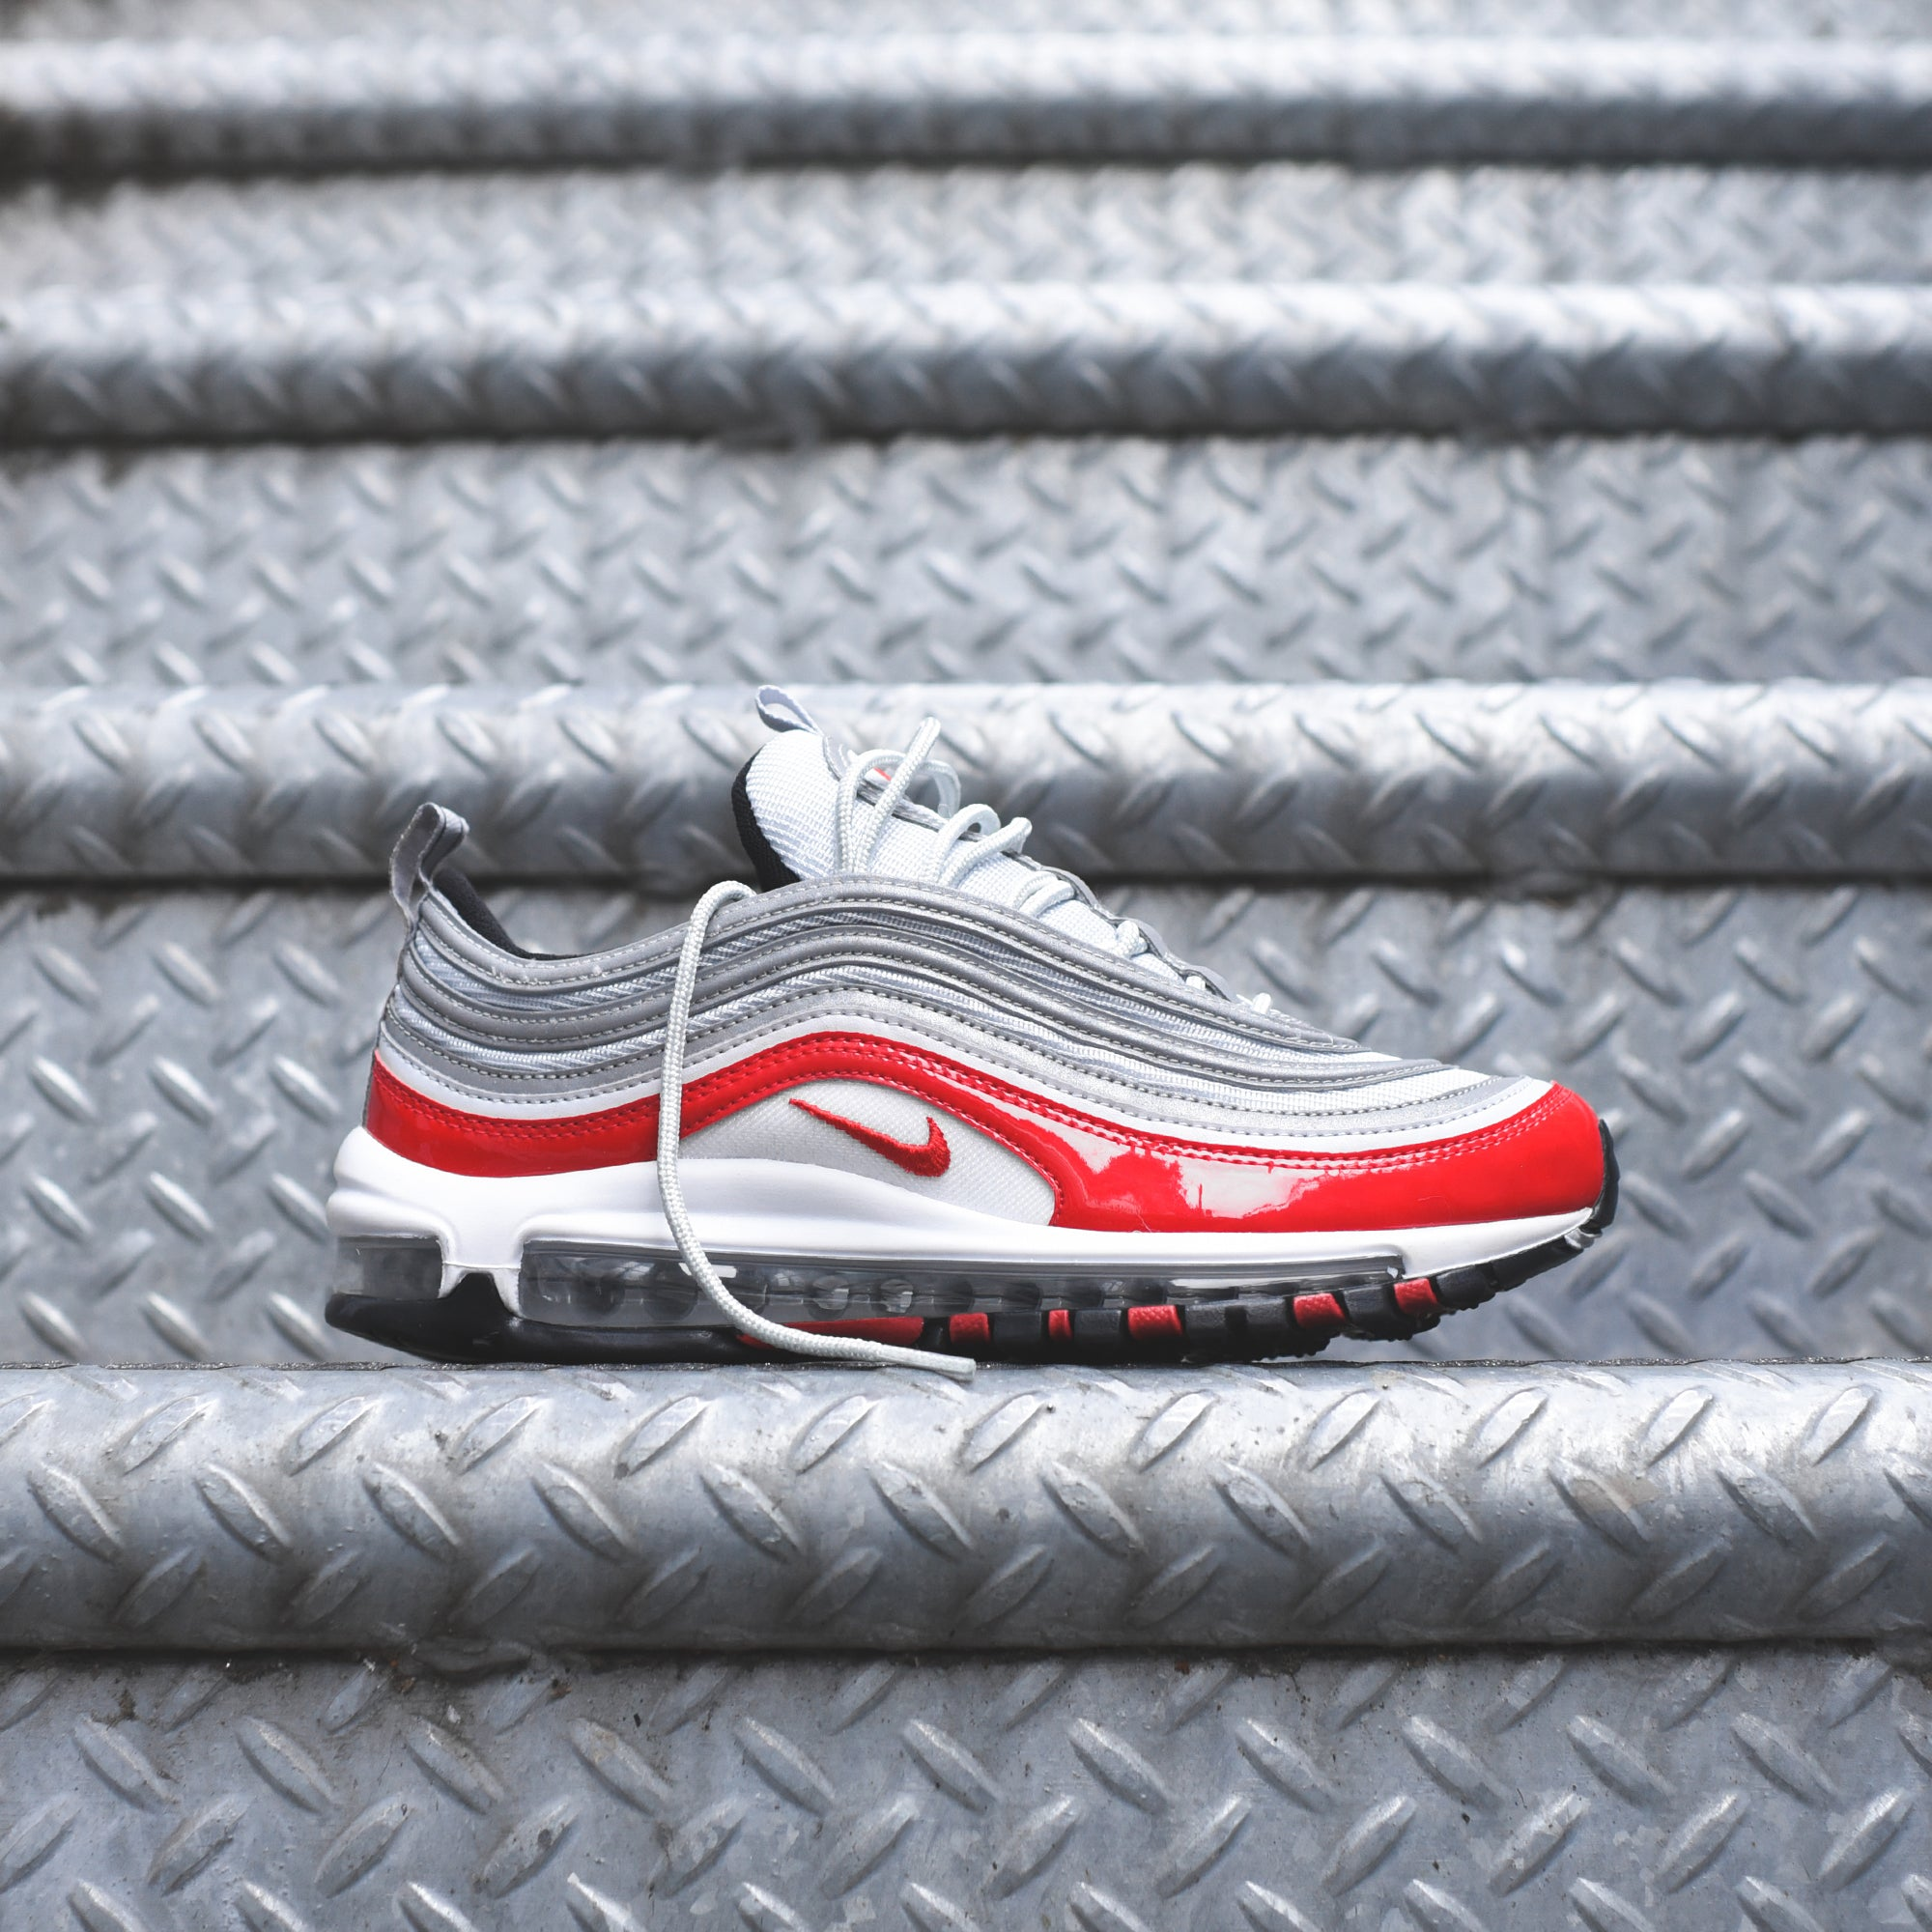 a95afcc76e Nike Air Max 97 - Pure Platinum   University Red. July 03